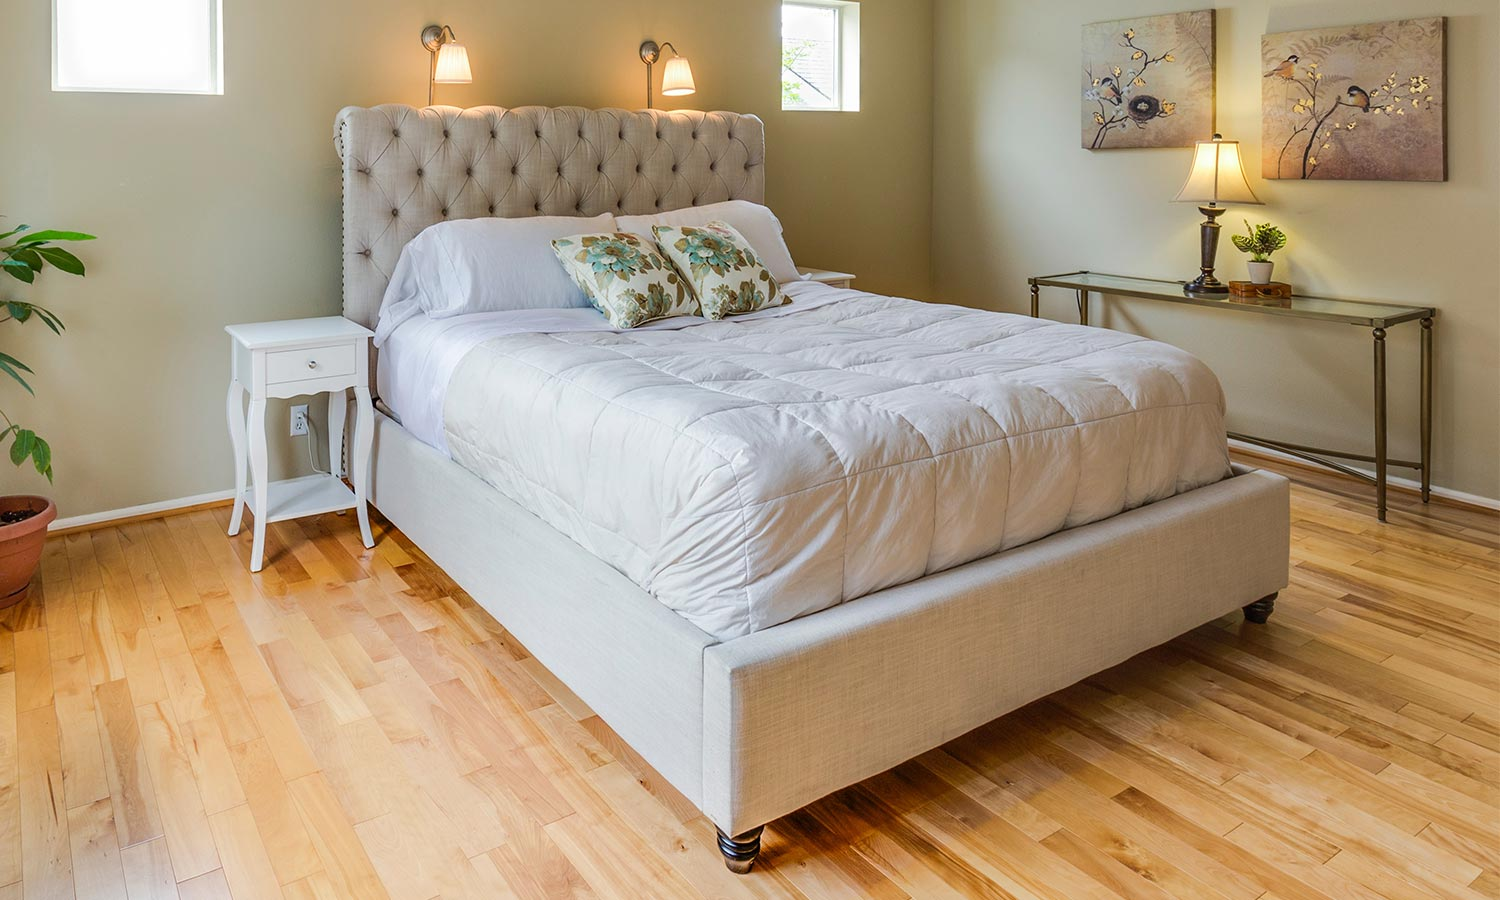 An upholstered bed with a built-in tufted headboard